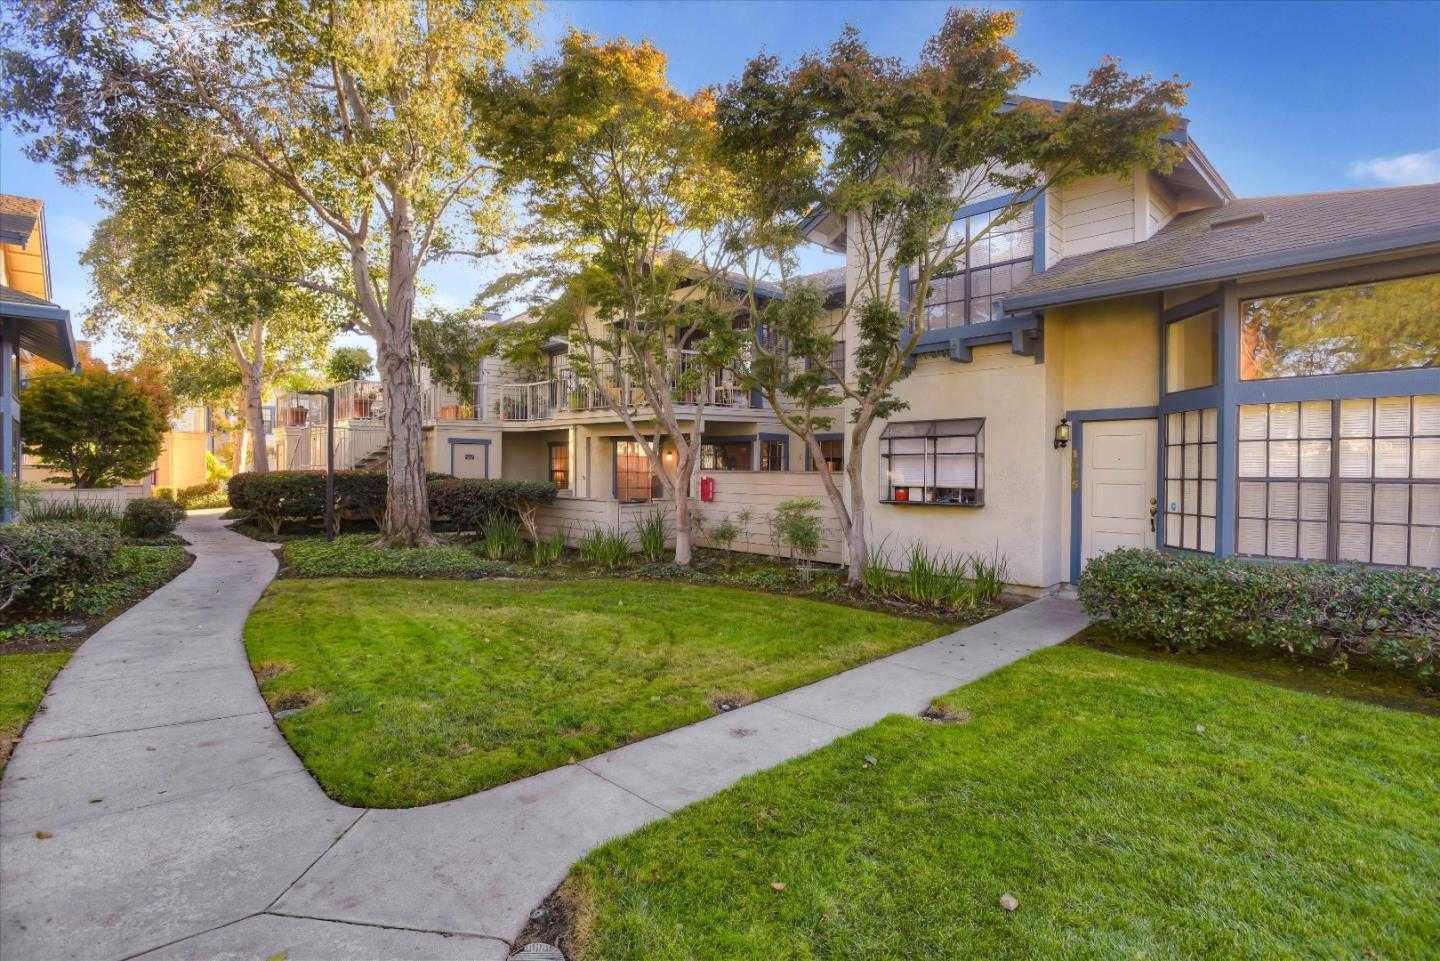 $895,000 - 2Br/2Ba -  for Sale in San Mateo